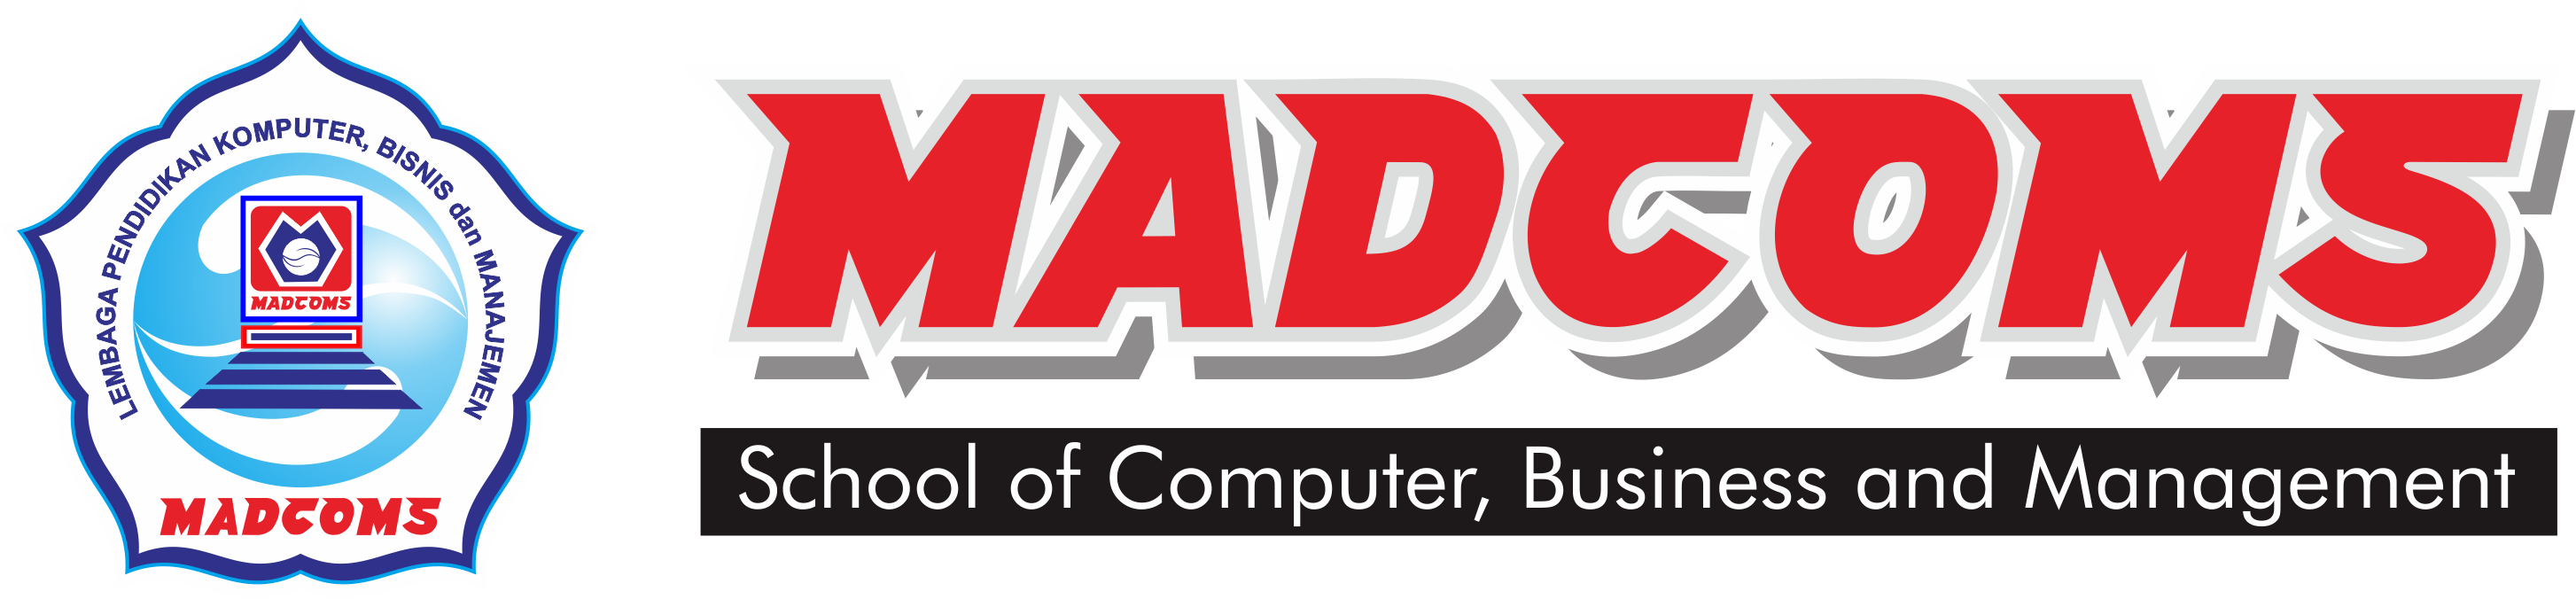 Madcoms Madiun - School of Computer, Business & Management